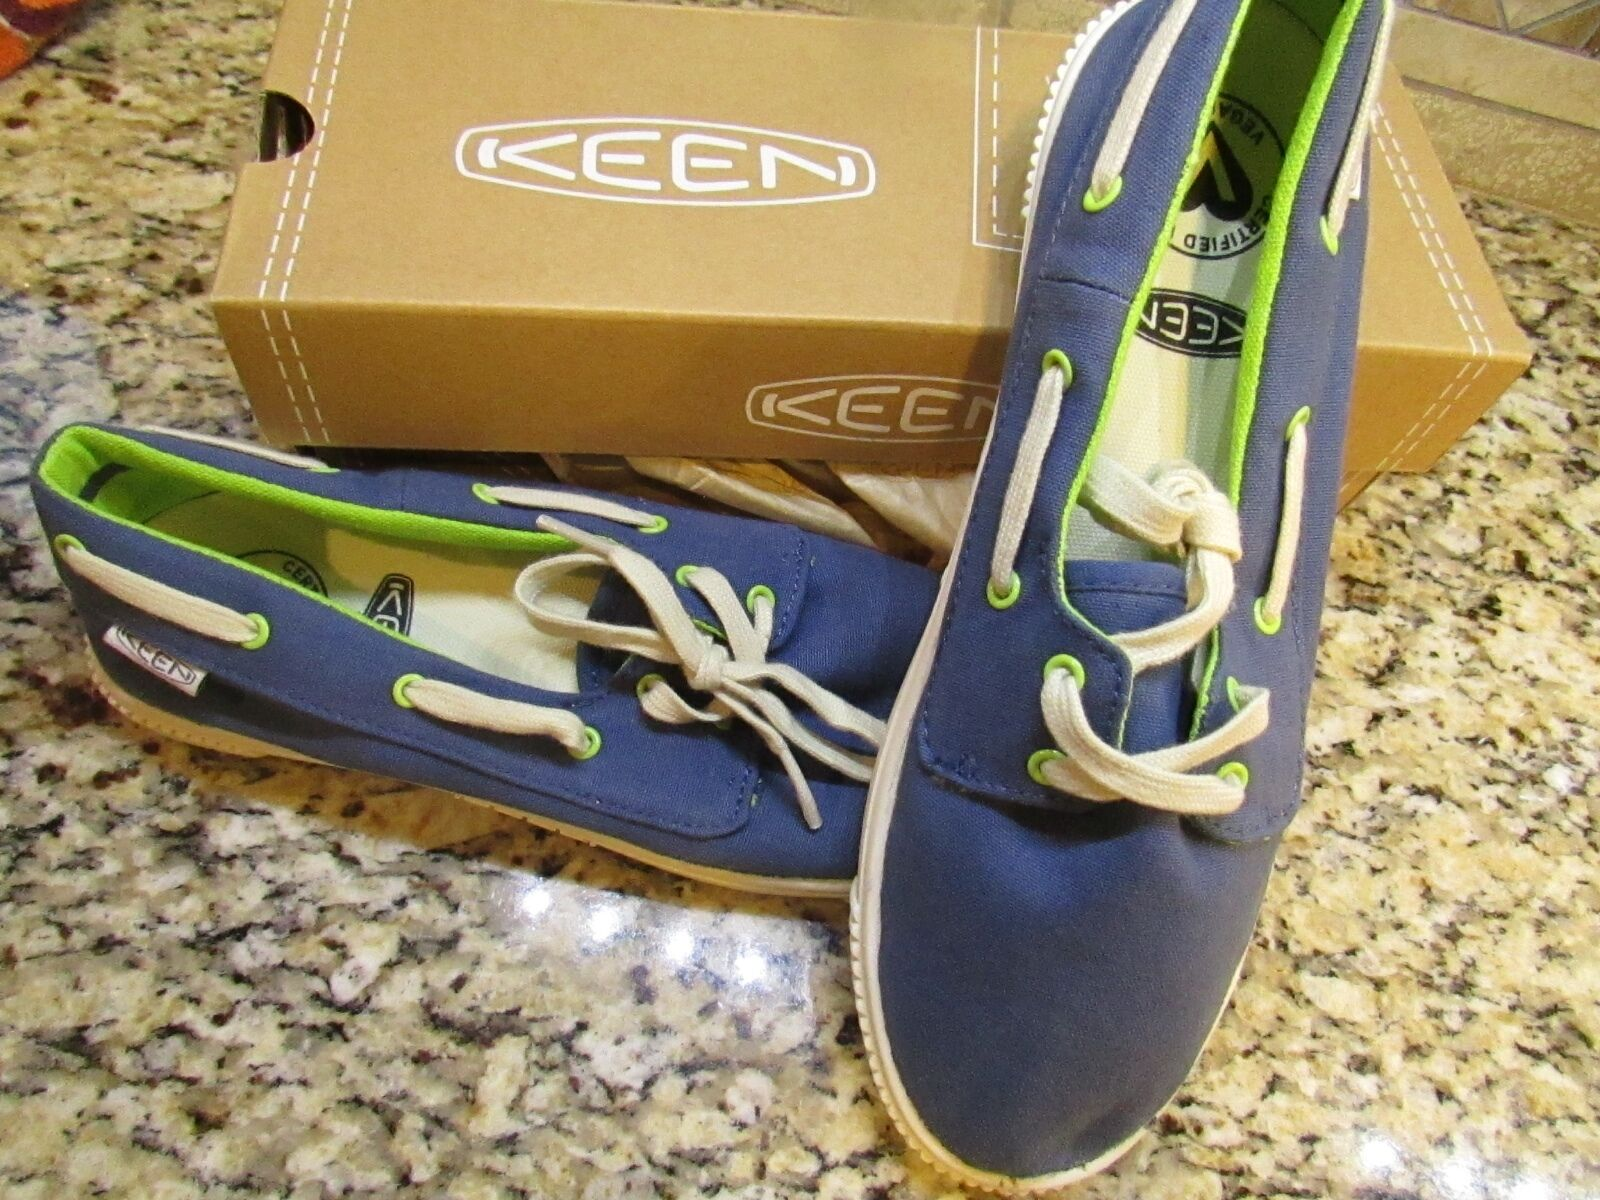 NEW KEEN MADERAS BOAT SHOES WOMENS 10.5 ENSIGN blueE STYLE  1010304  FREE SHIP